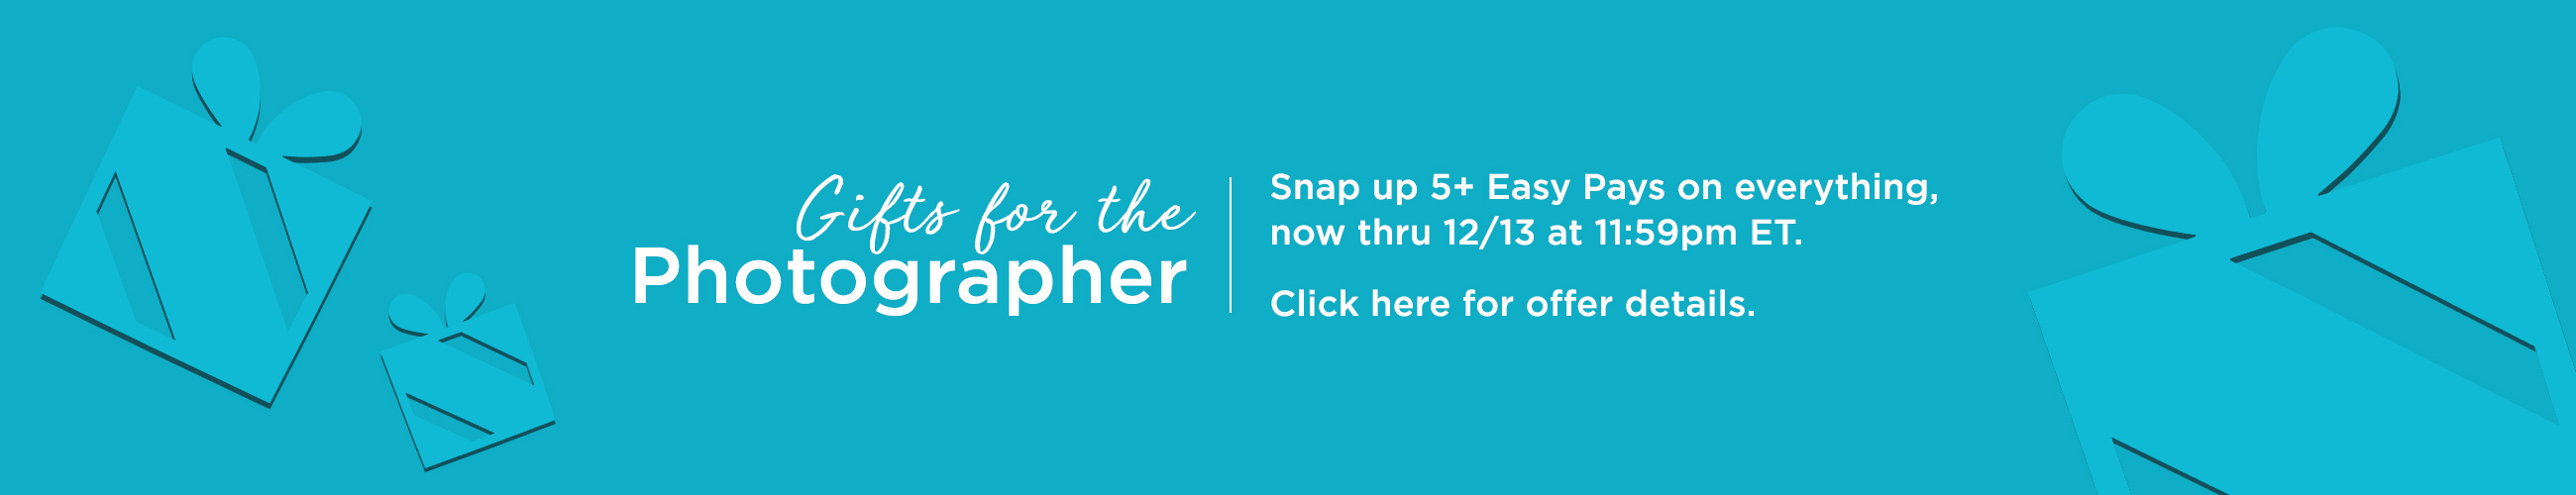 Gifts for the Photographer - Snap up 5+ Easy Pays on everything, now thru 12/13 at 11:59pm ET.  Click here for offer details.